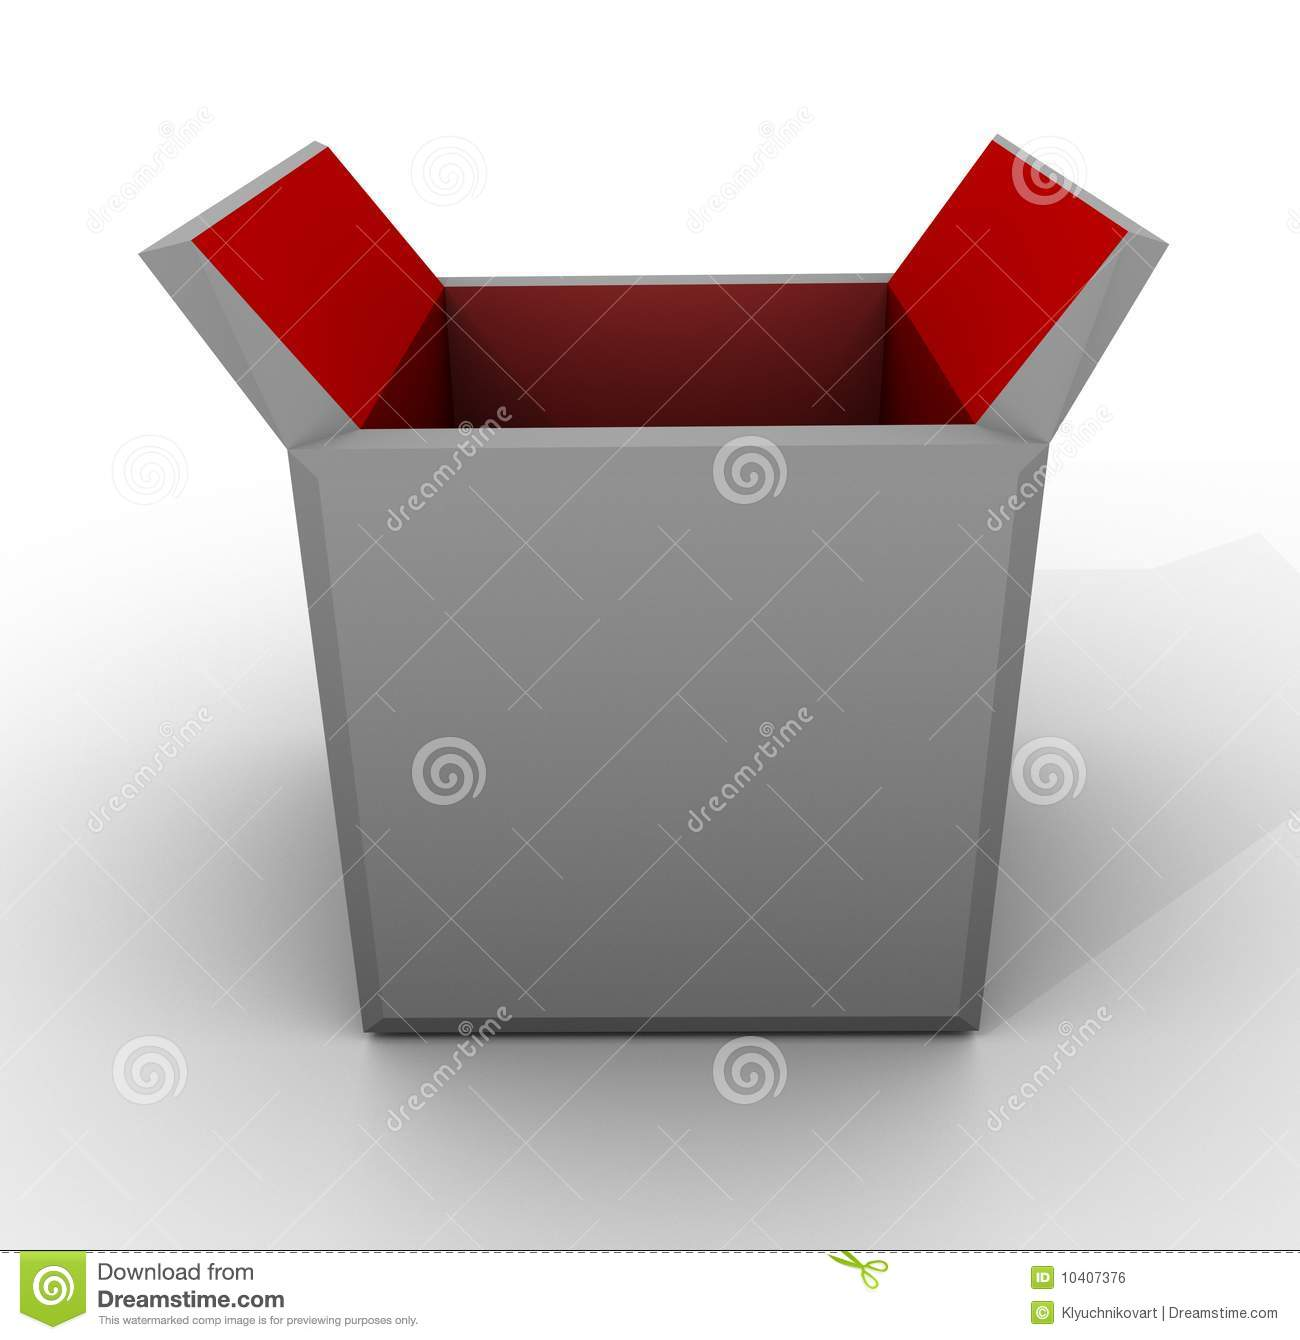 template empty open box red grey white carton royalty free stock image image 10407376. Black Bedroom Furniture Sets. Home Design Ideas